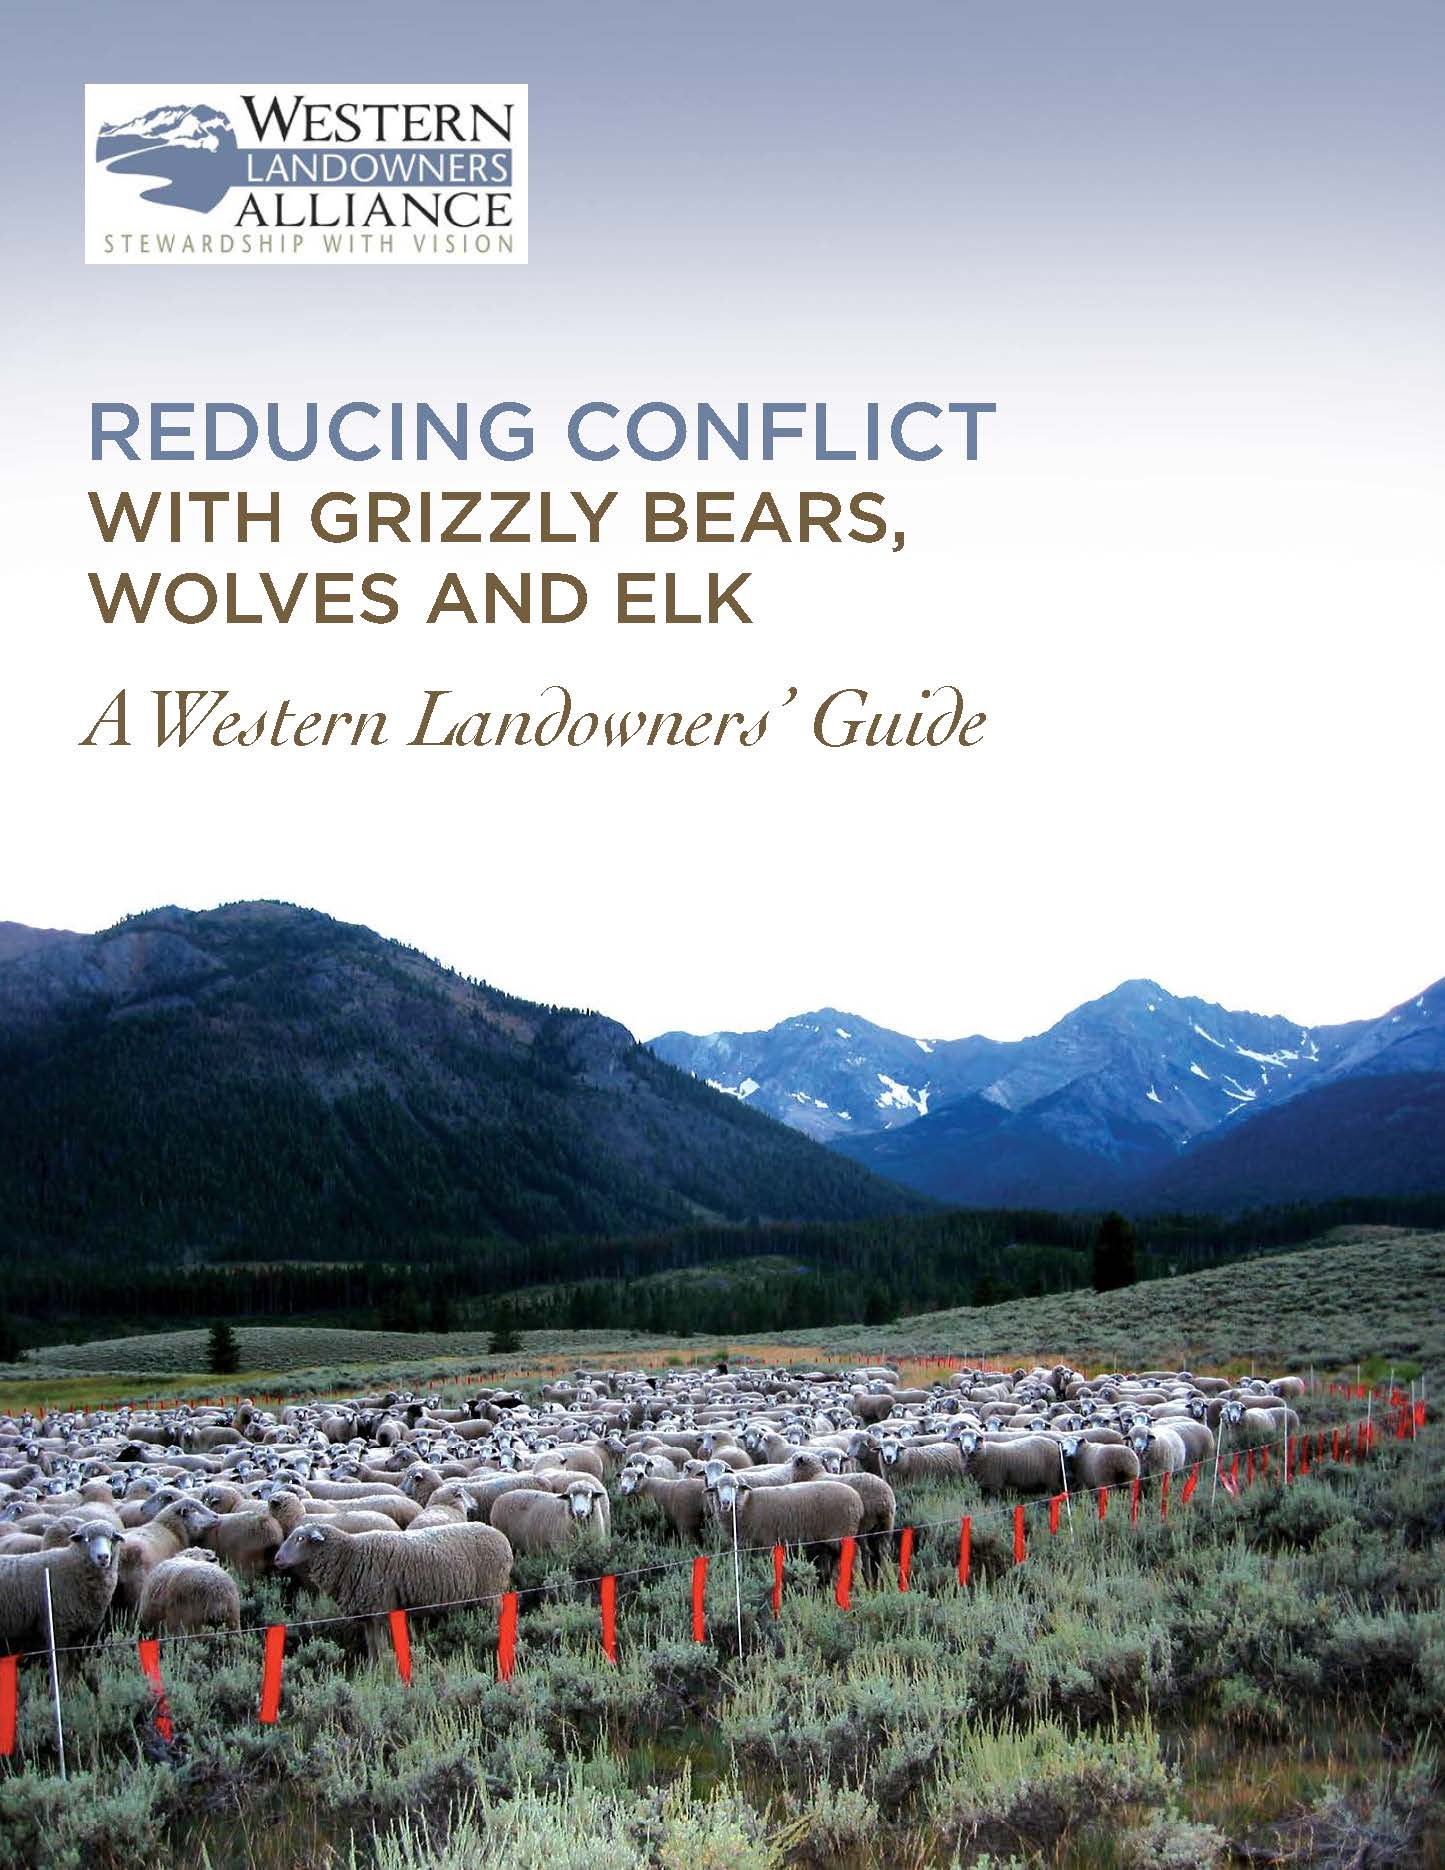 New! Guide to Reducing Conflict - In this guide, WLA offers the collective knowledge and hands-on experience of over 30 land, livestock and resource managers constructively engaged in one of the greatest conservation challenges of our time: how to share and manage a wild, working landscape that sustains both people and wildlife.WLA is pleased to provide the electronic version of this guide at no charge.